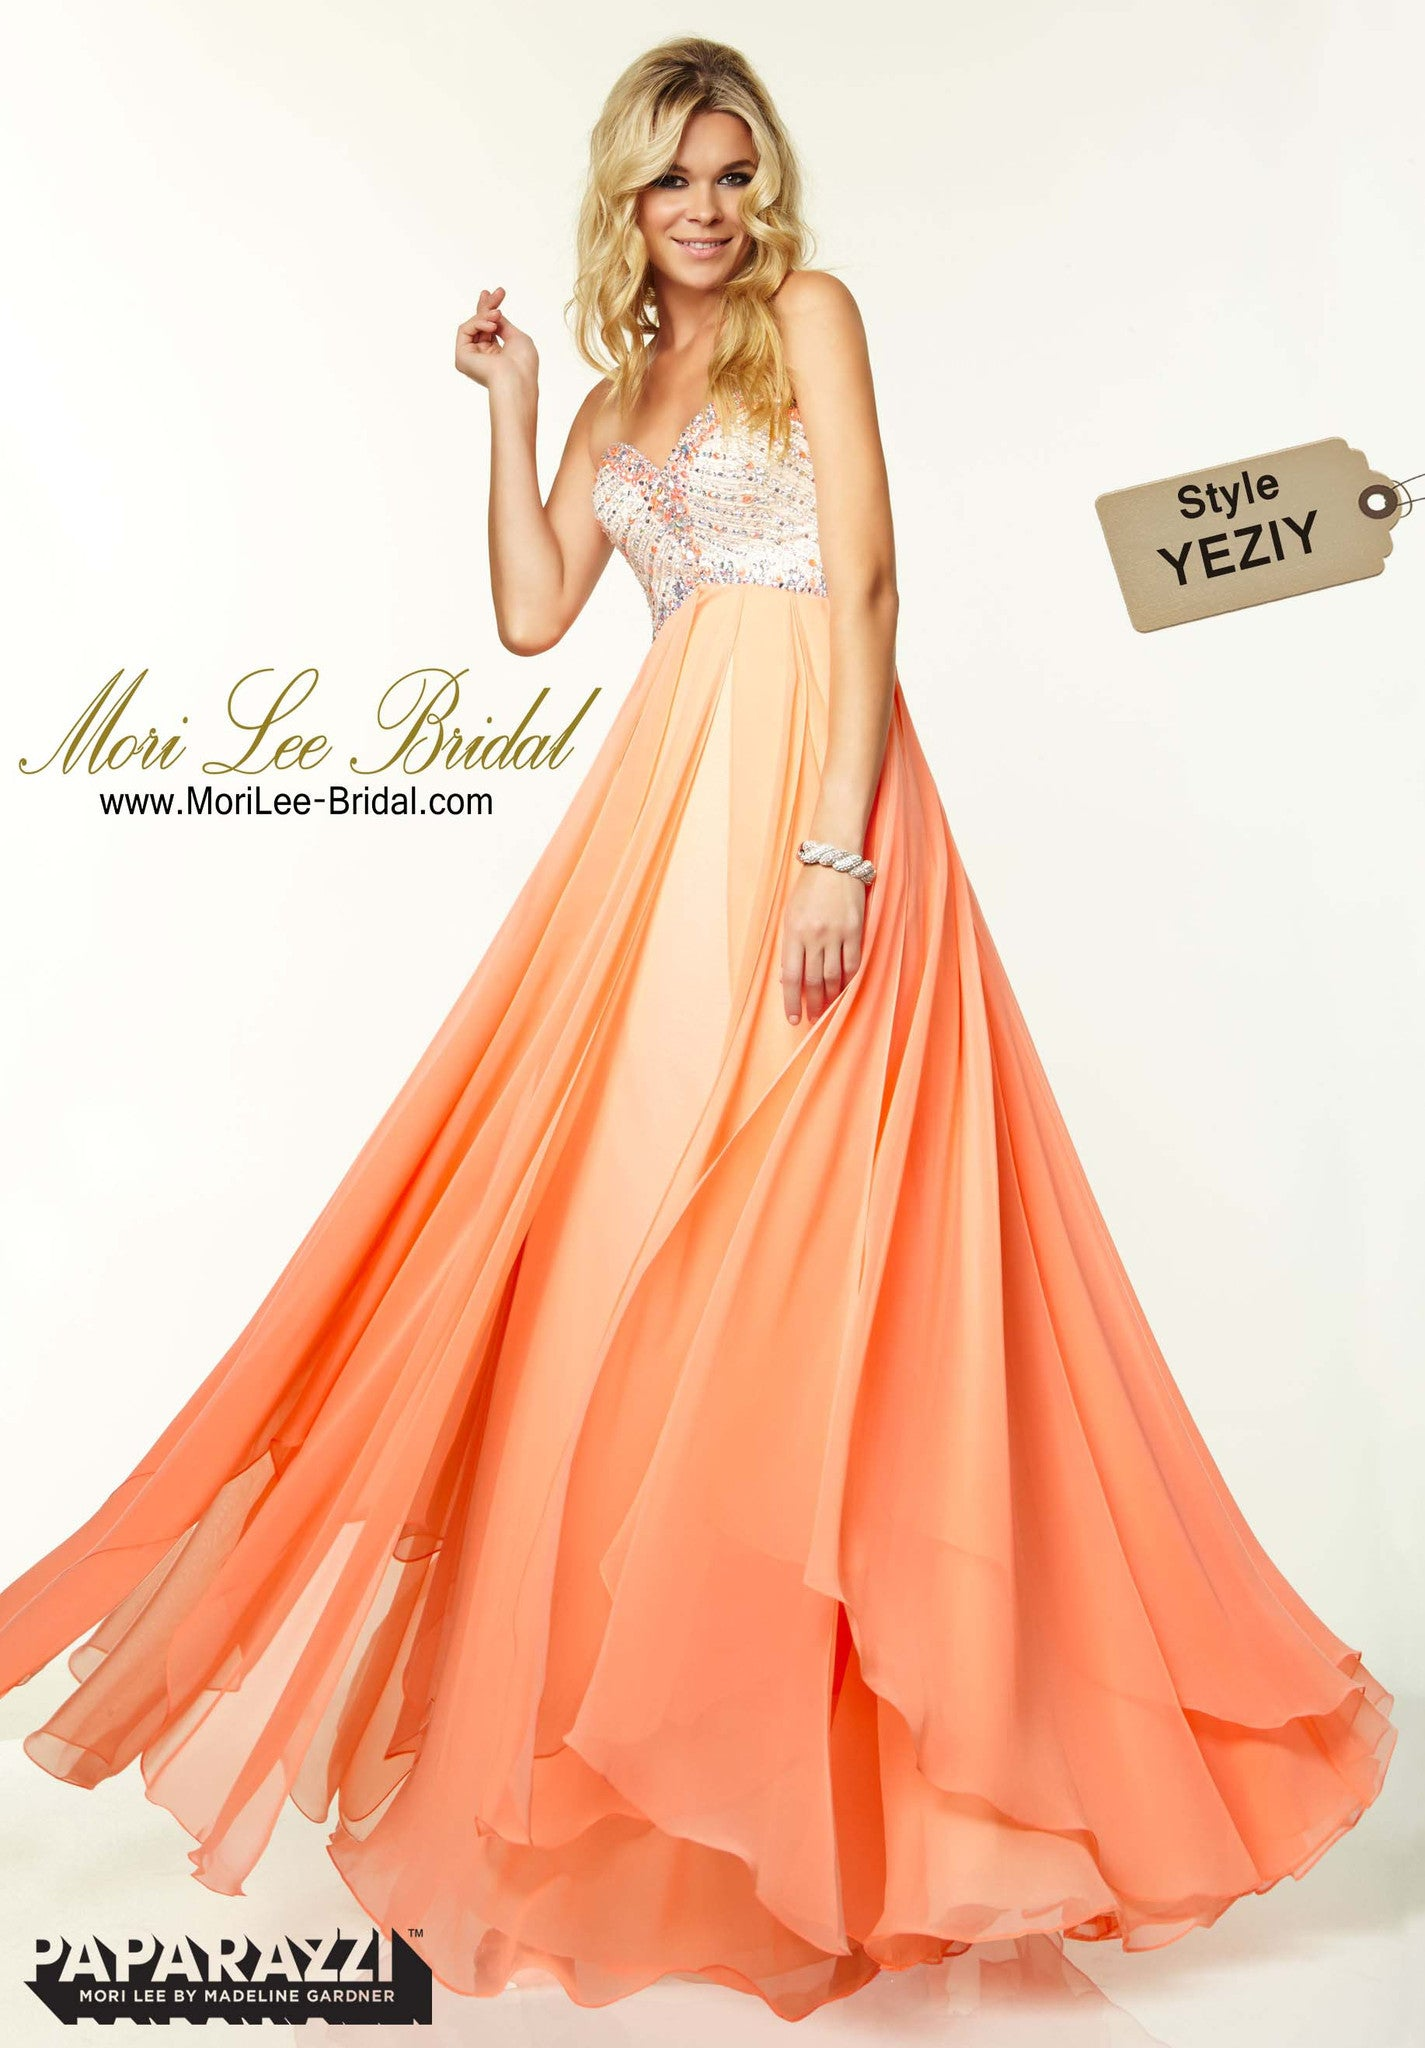 YEZIY* - Mori Lee Bridal